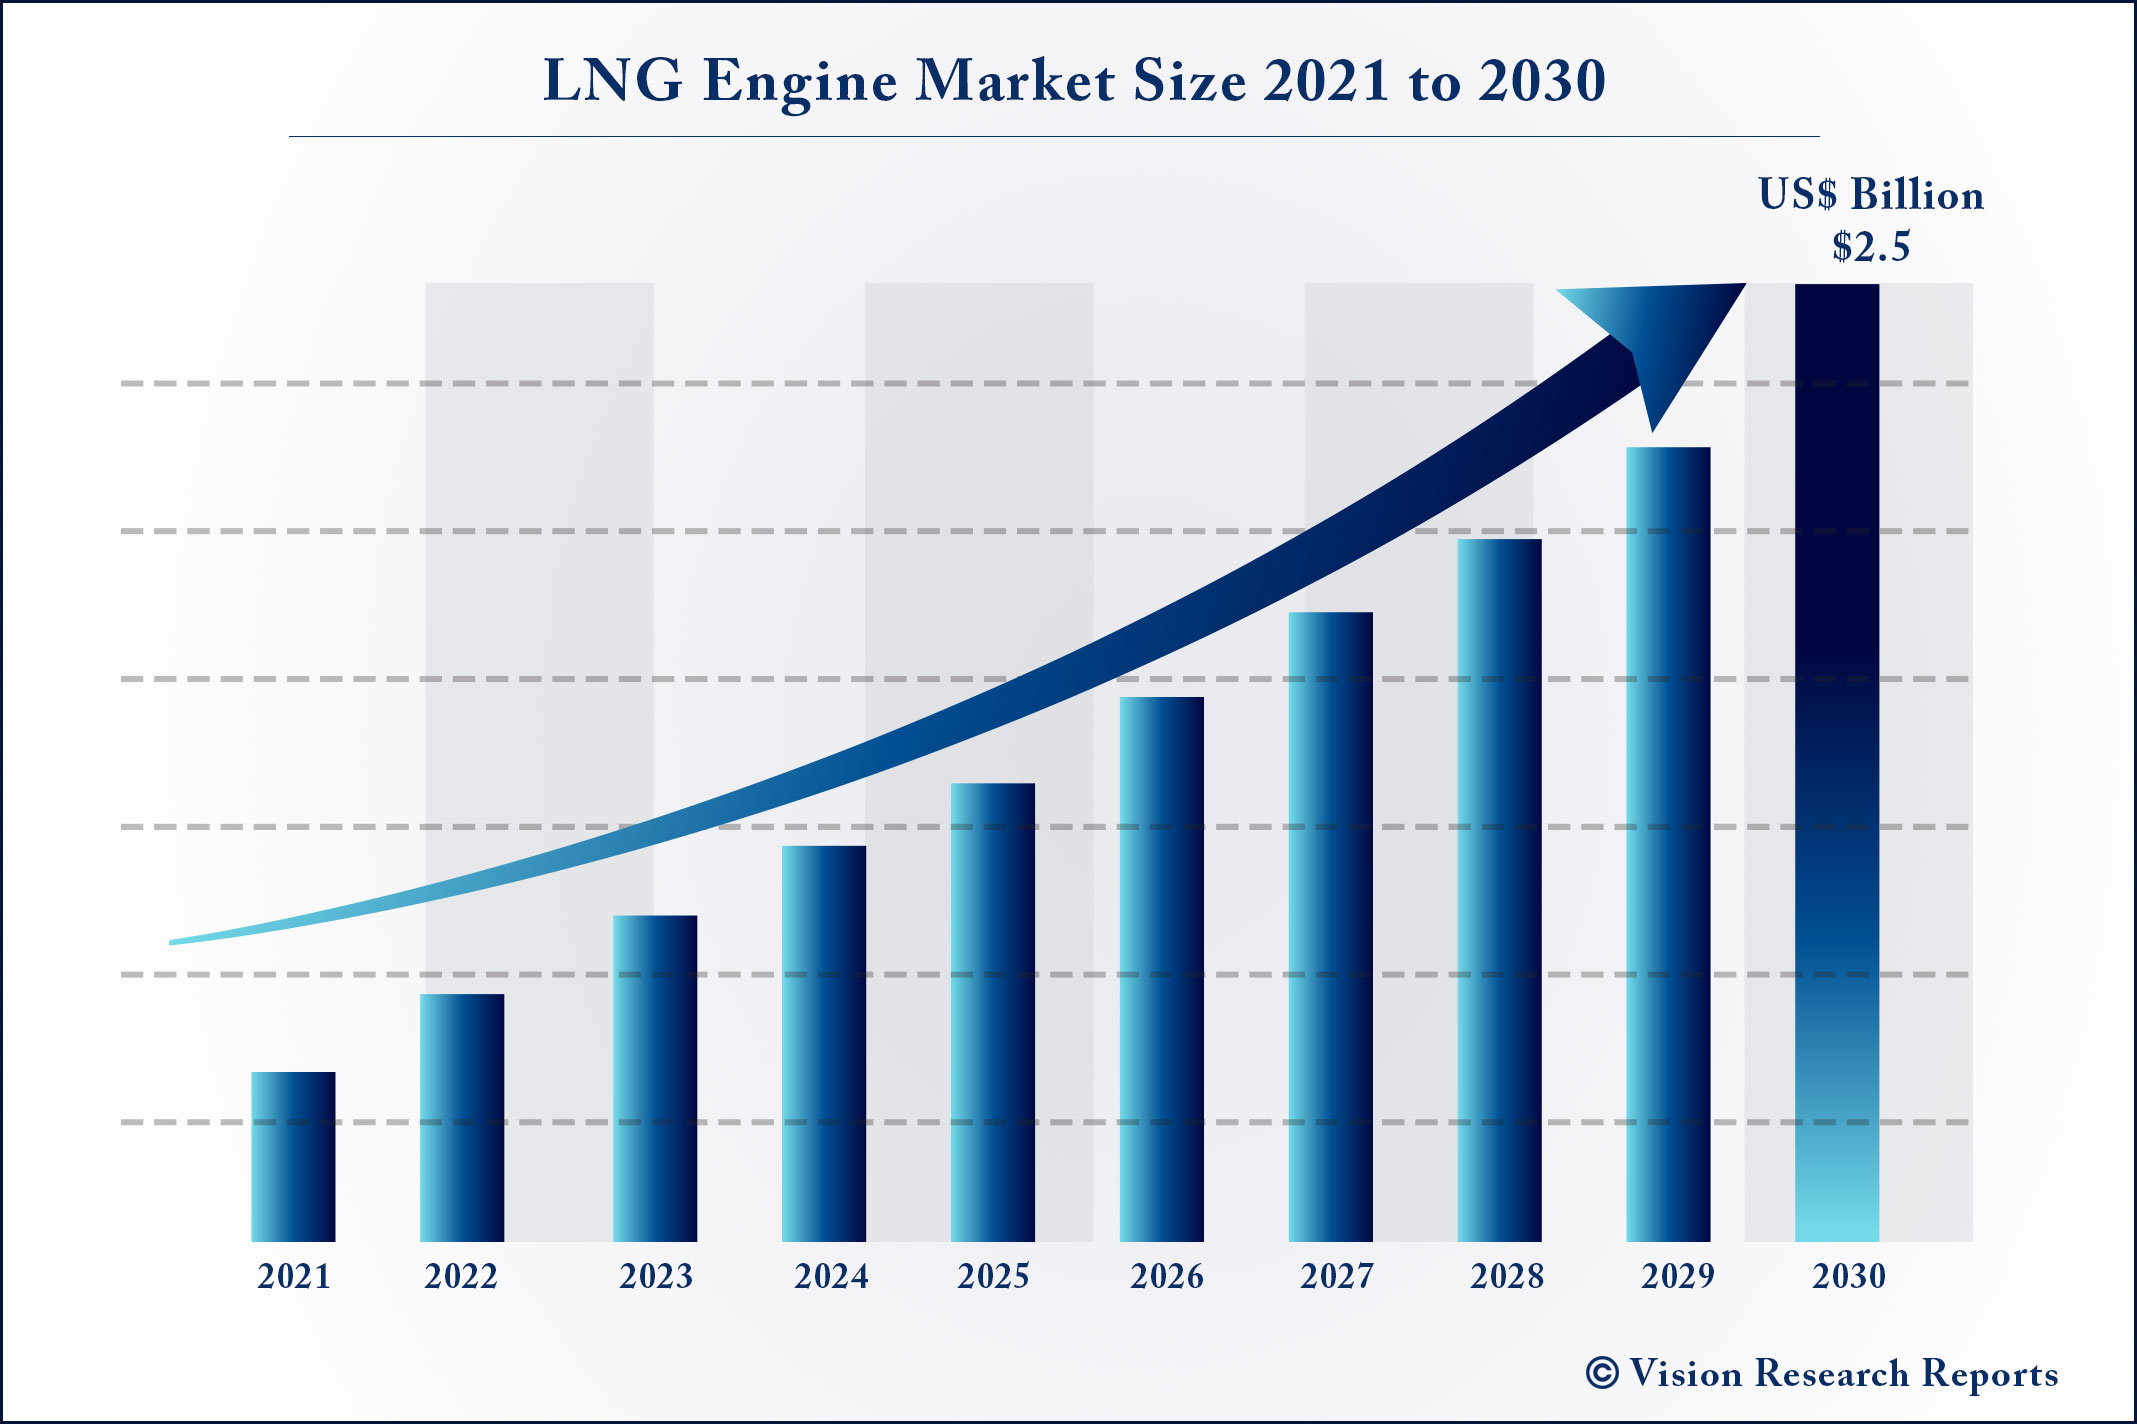 LNG Engine Market Size 2021 to 2030